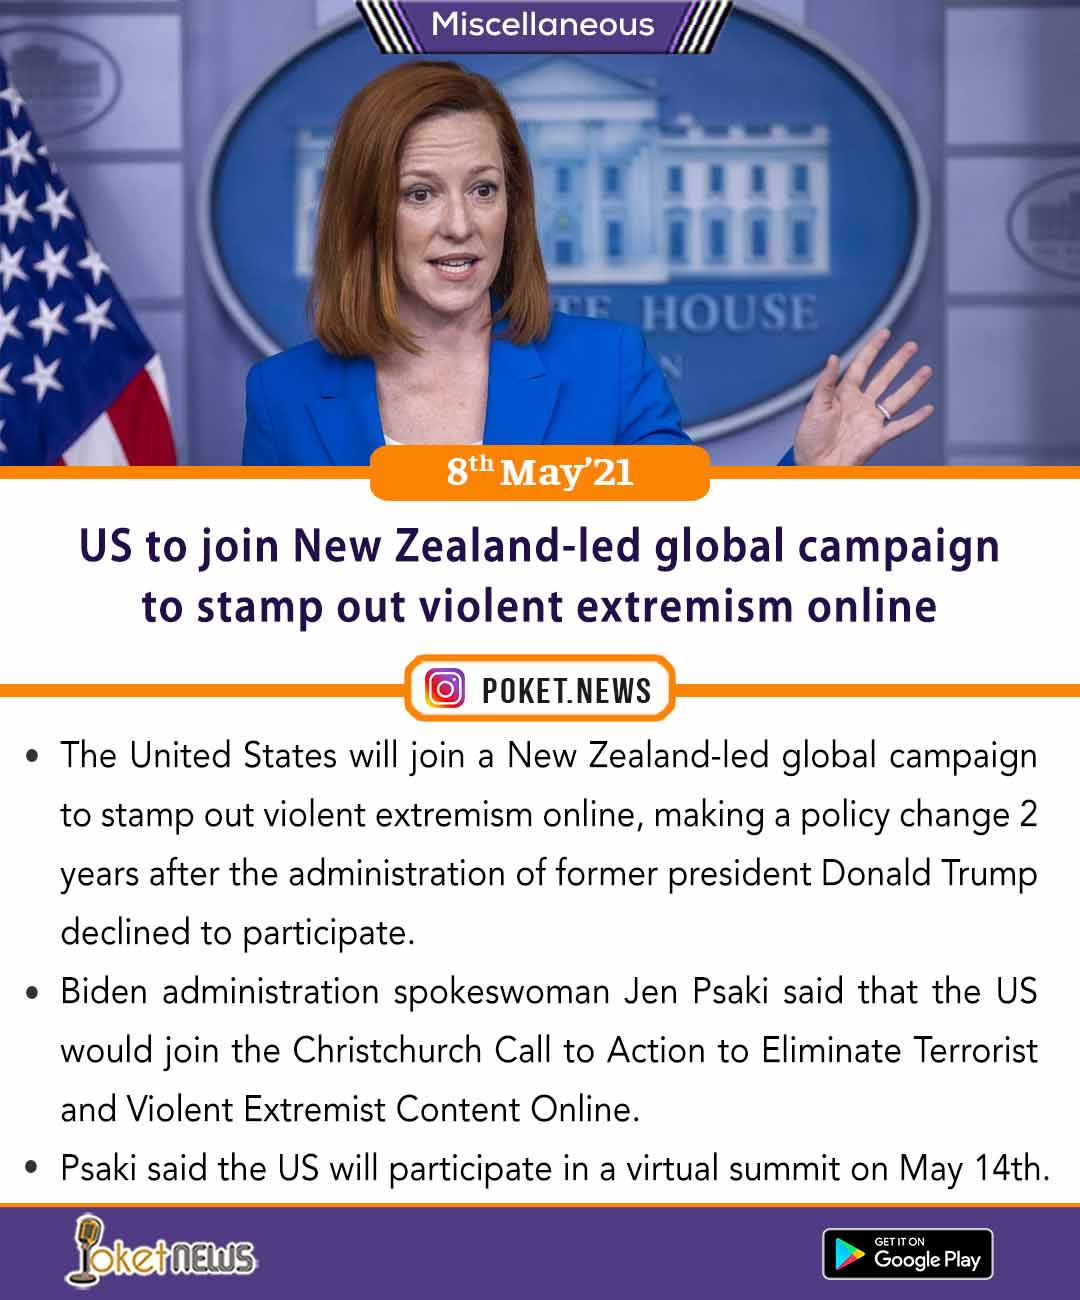 US to join New Zealand-led global campaign to stamp out violent extremism online